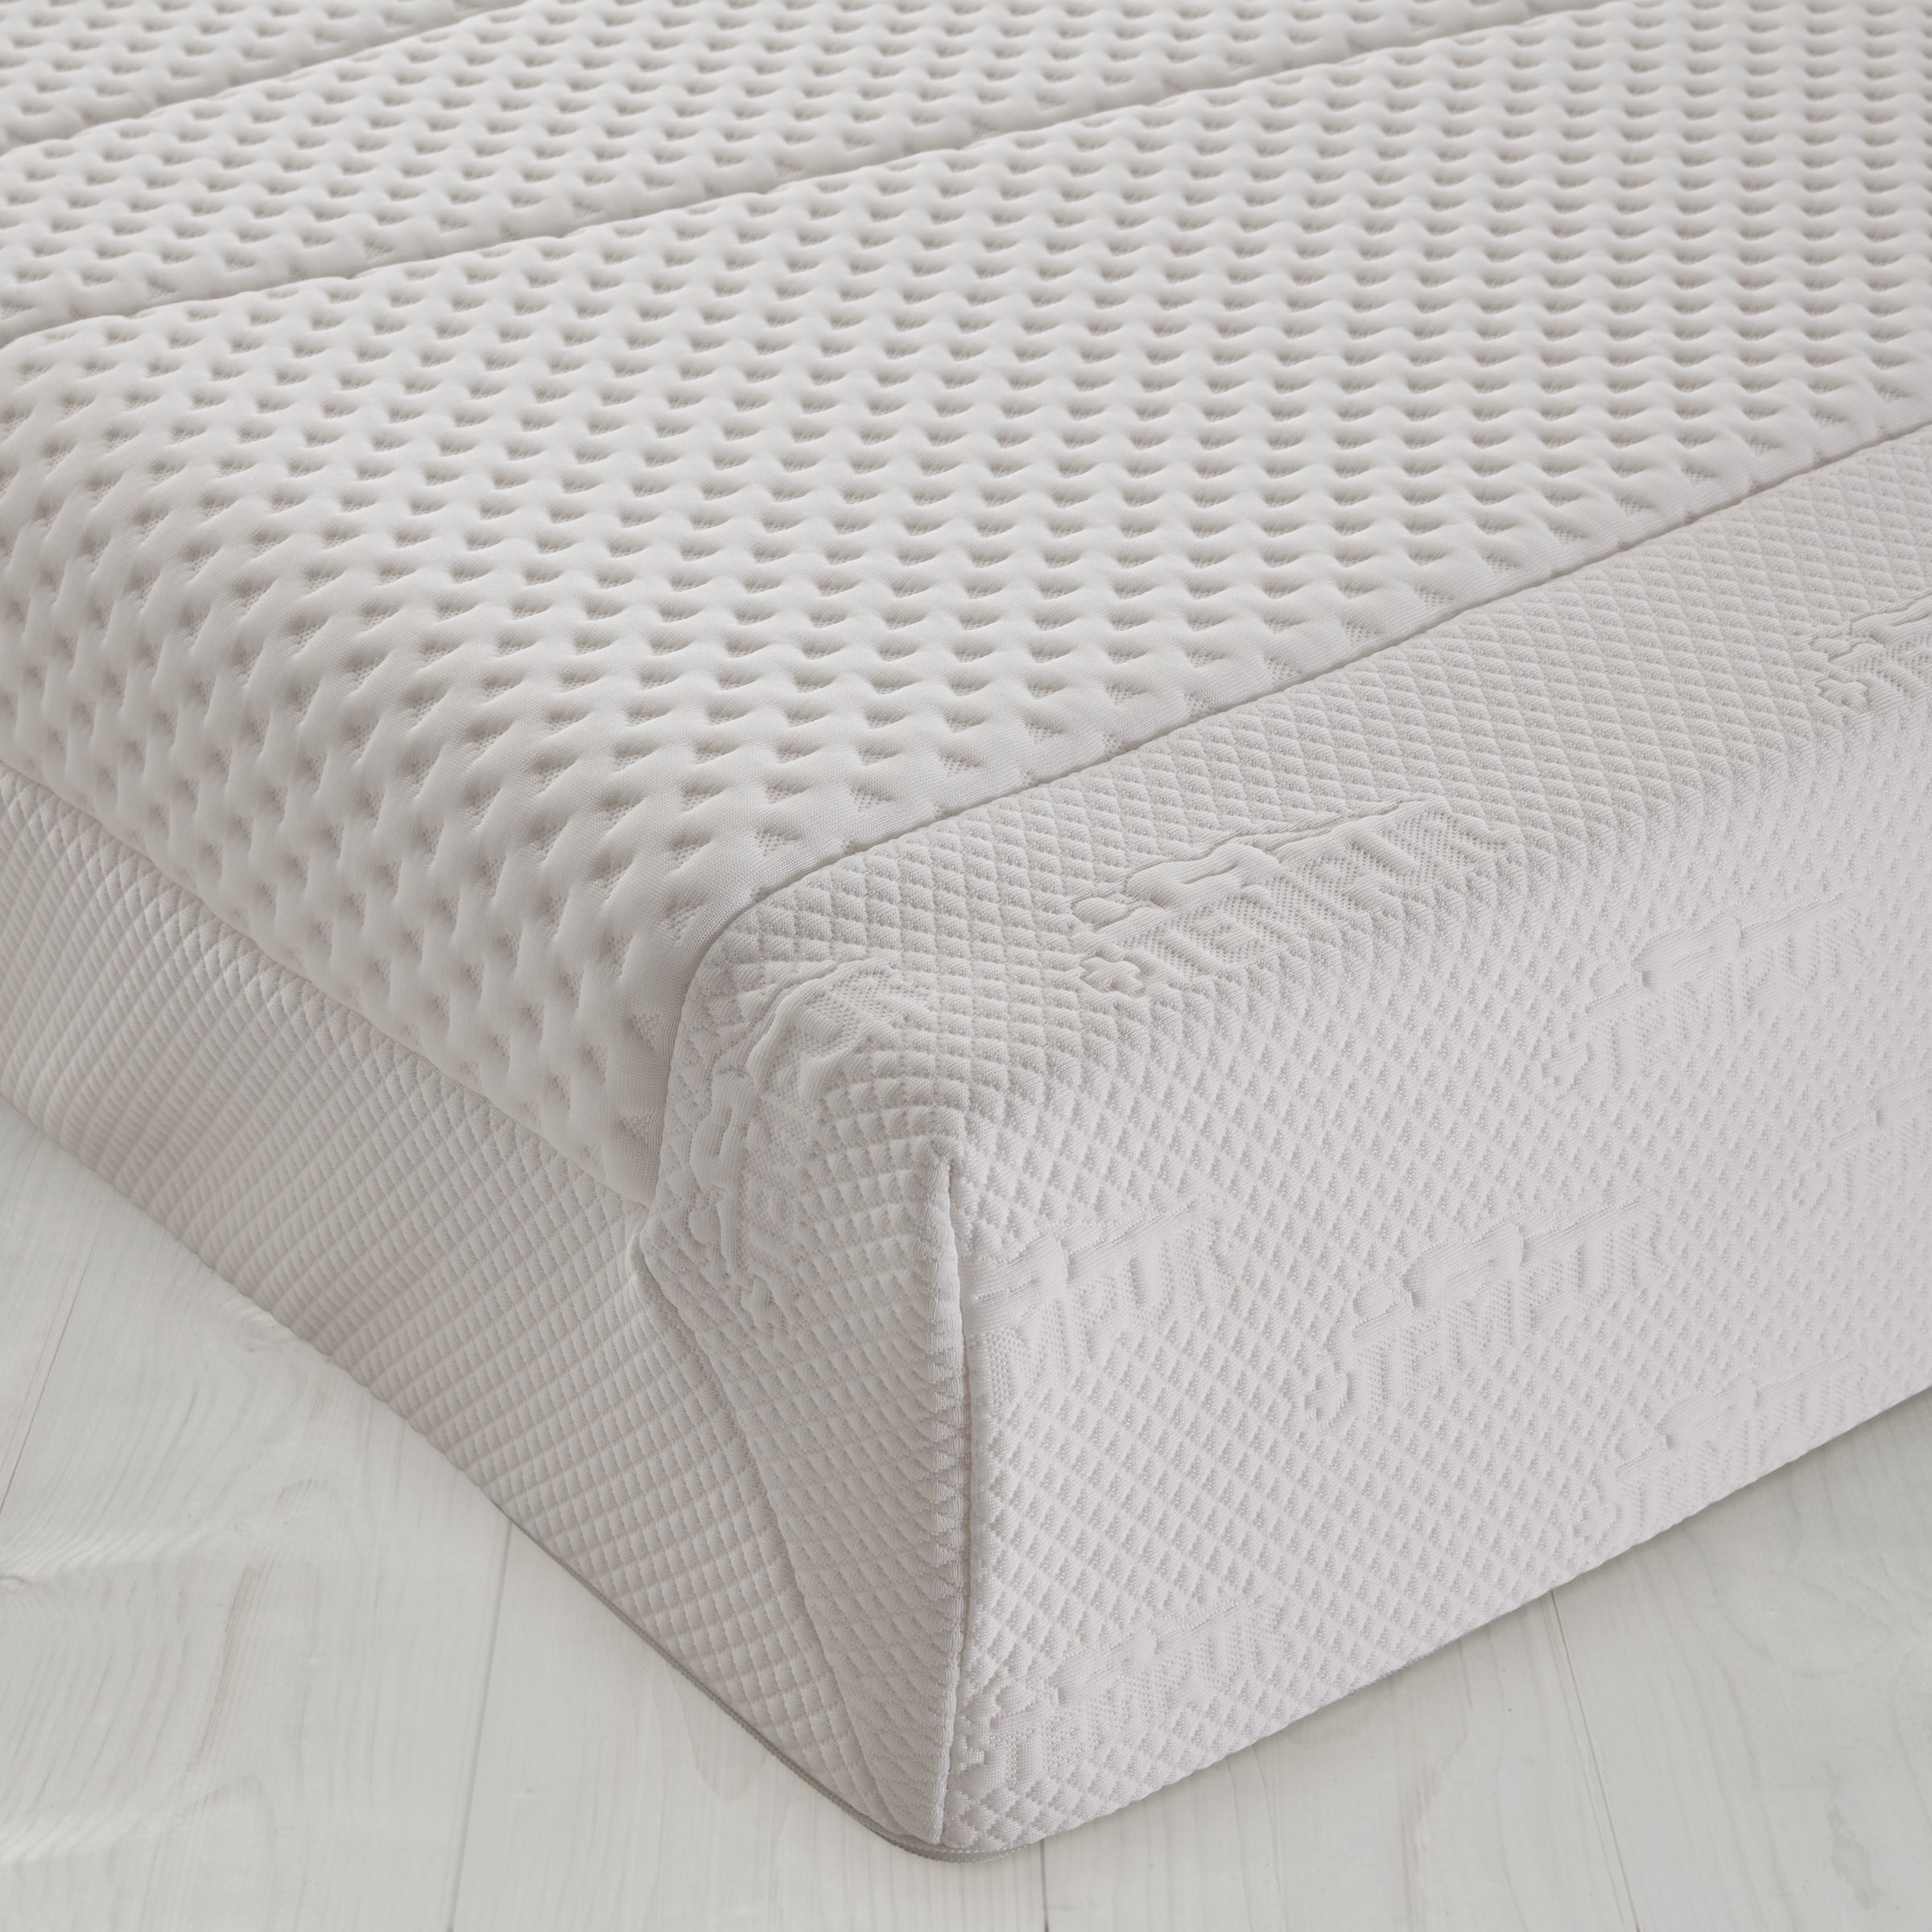 Tempur Original Deluxe 22 Mattress, Super Kingsize